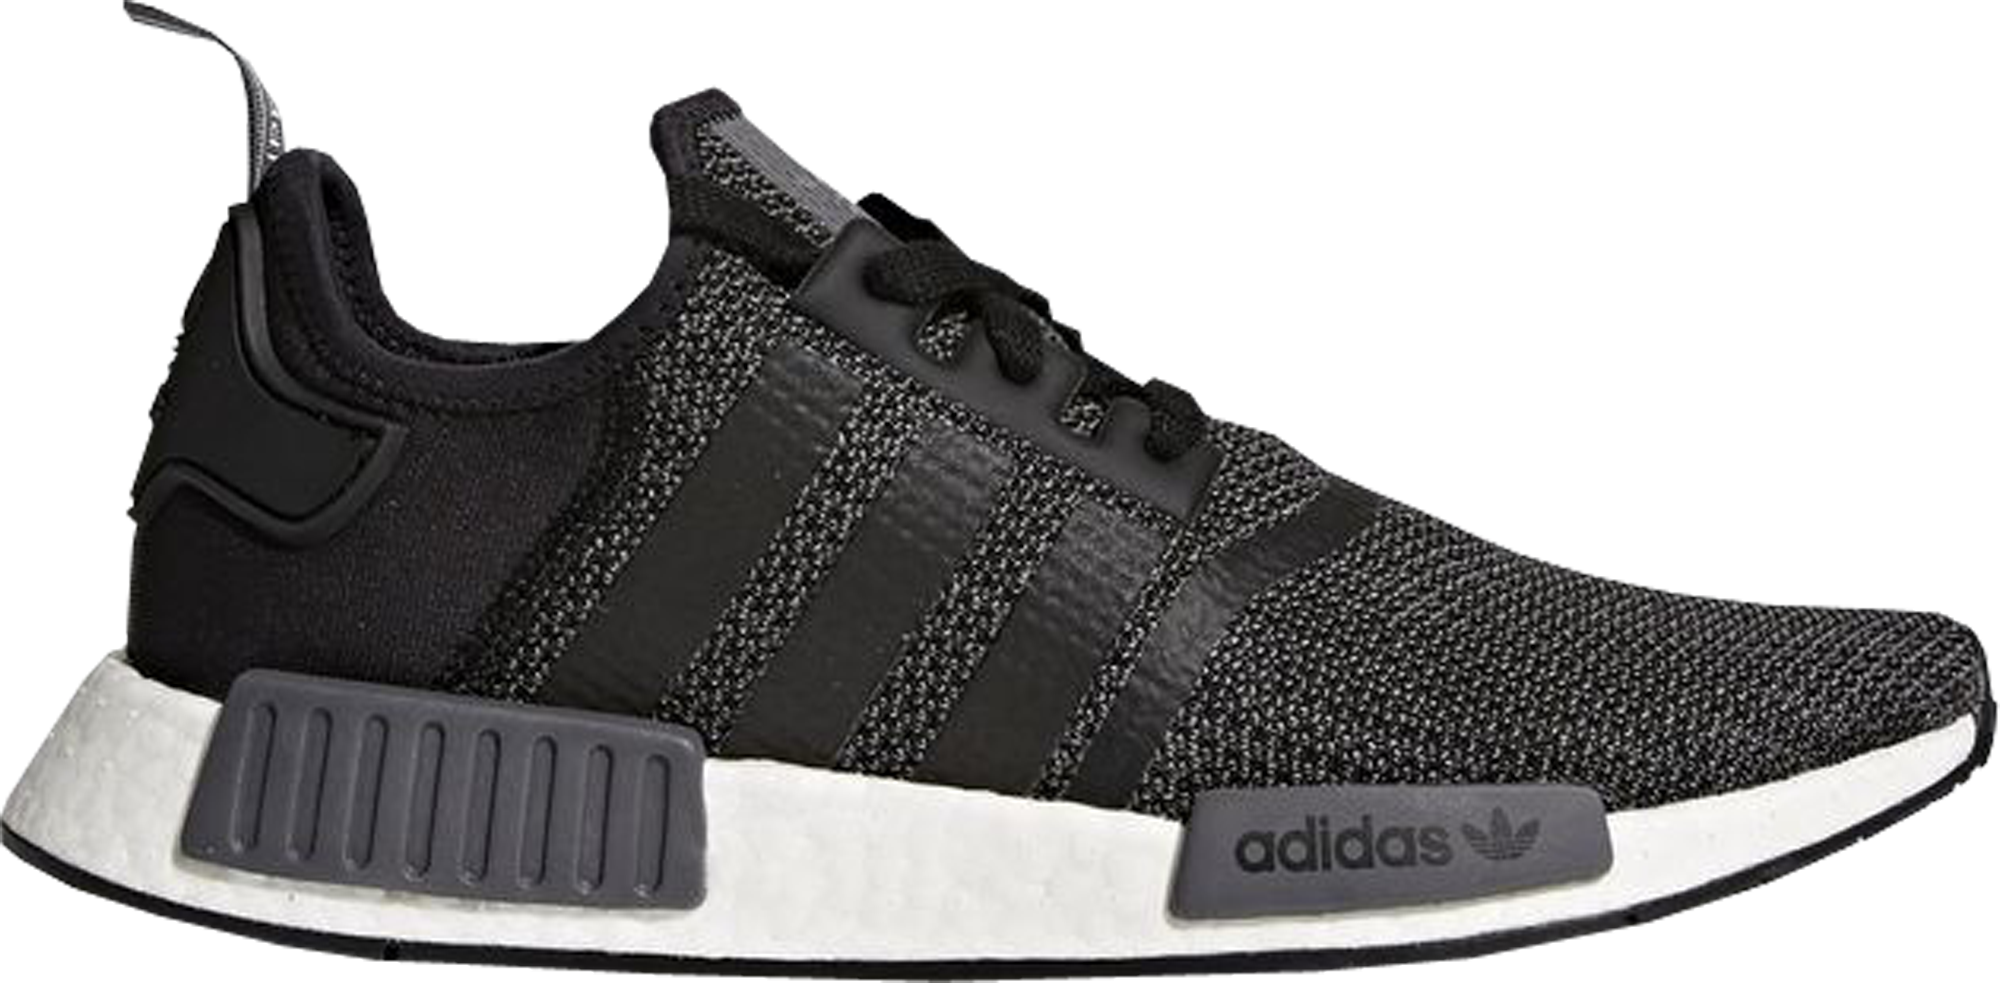 reputable site 8d031 fd234 nmd r1 carbon stockx price chart Adidas Women Originals Trainers TUBULAR  VIRAL Clear Onix Clear Onix Core White ...